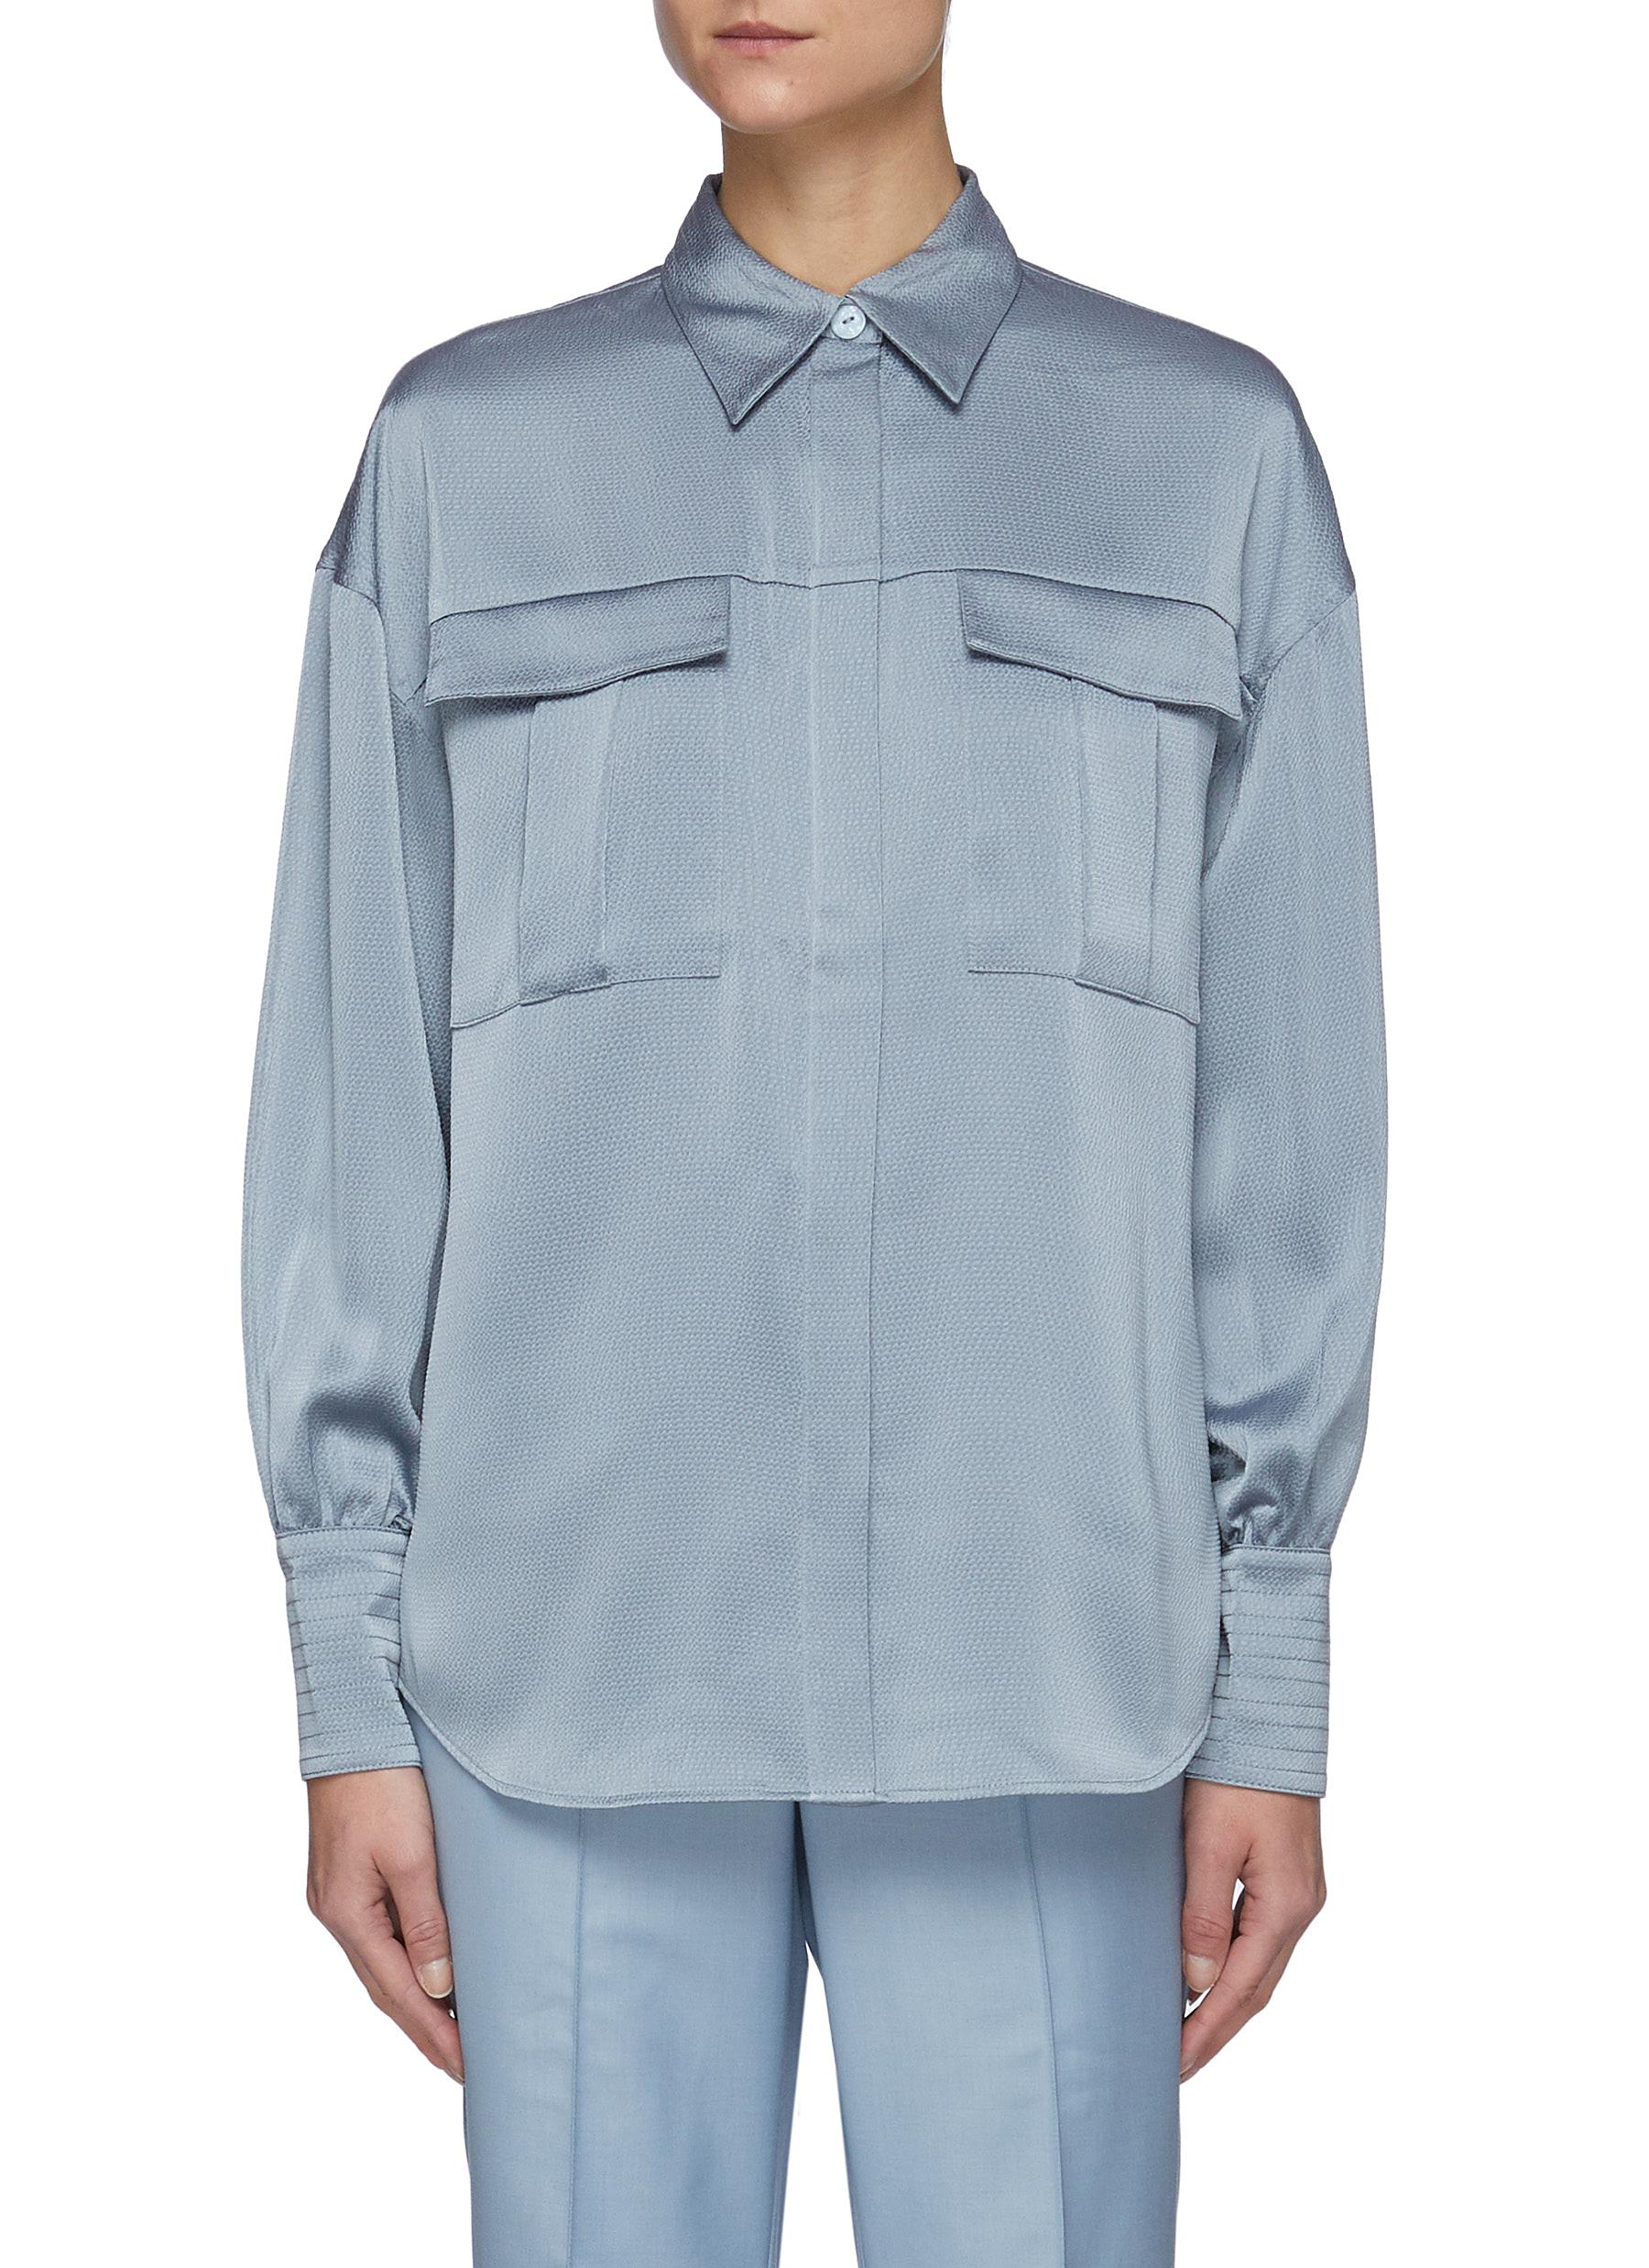 Right There' Bell Sleeves Shirt